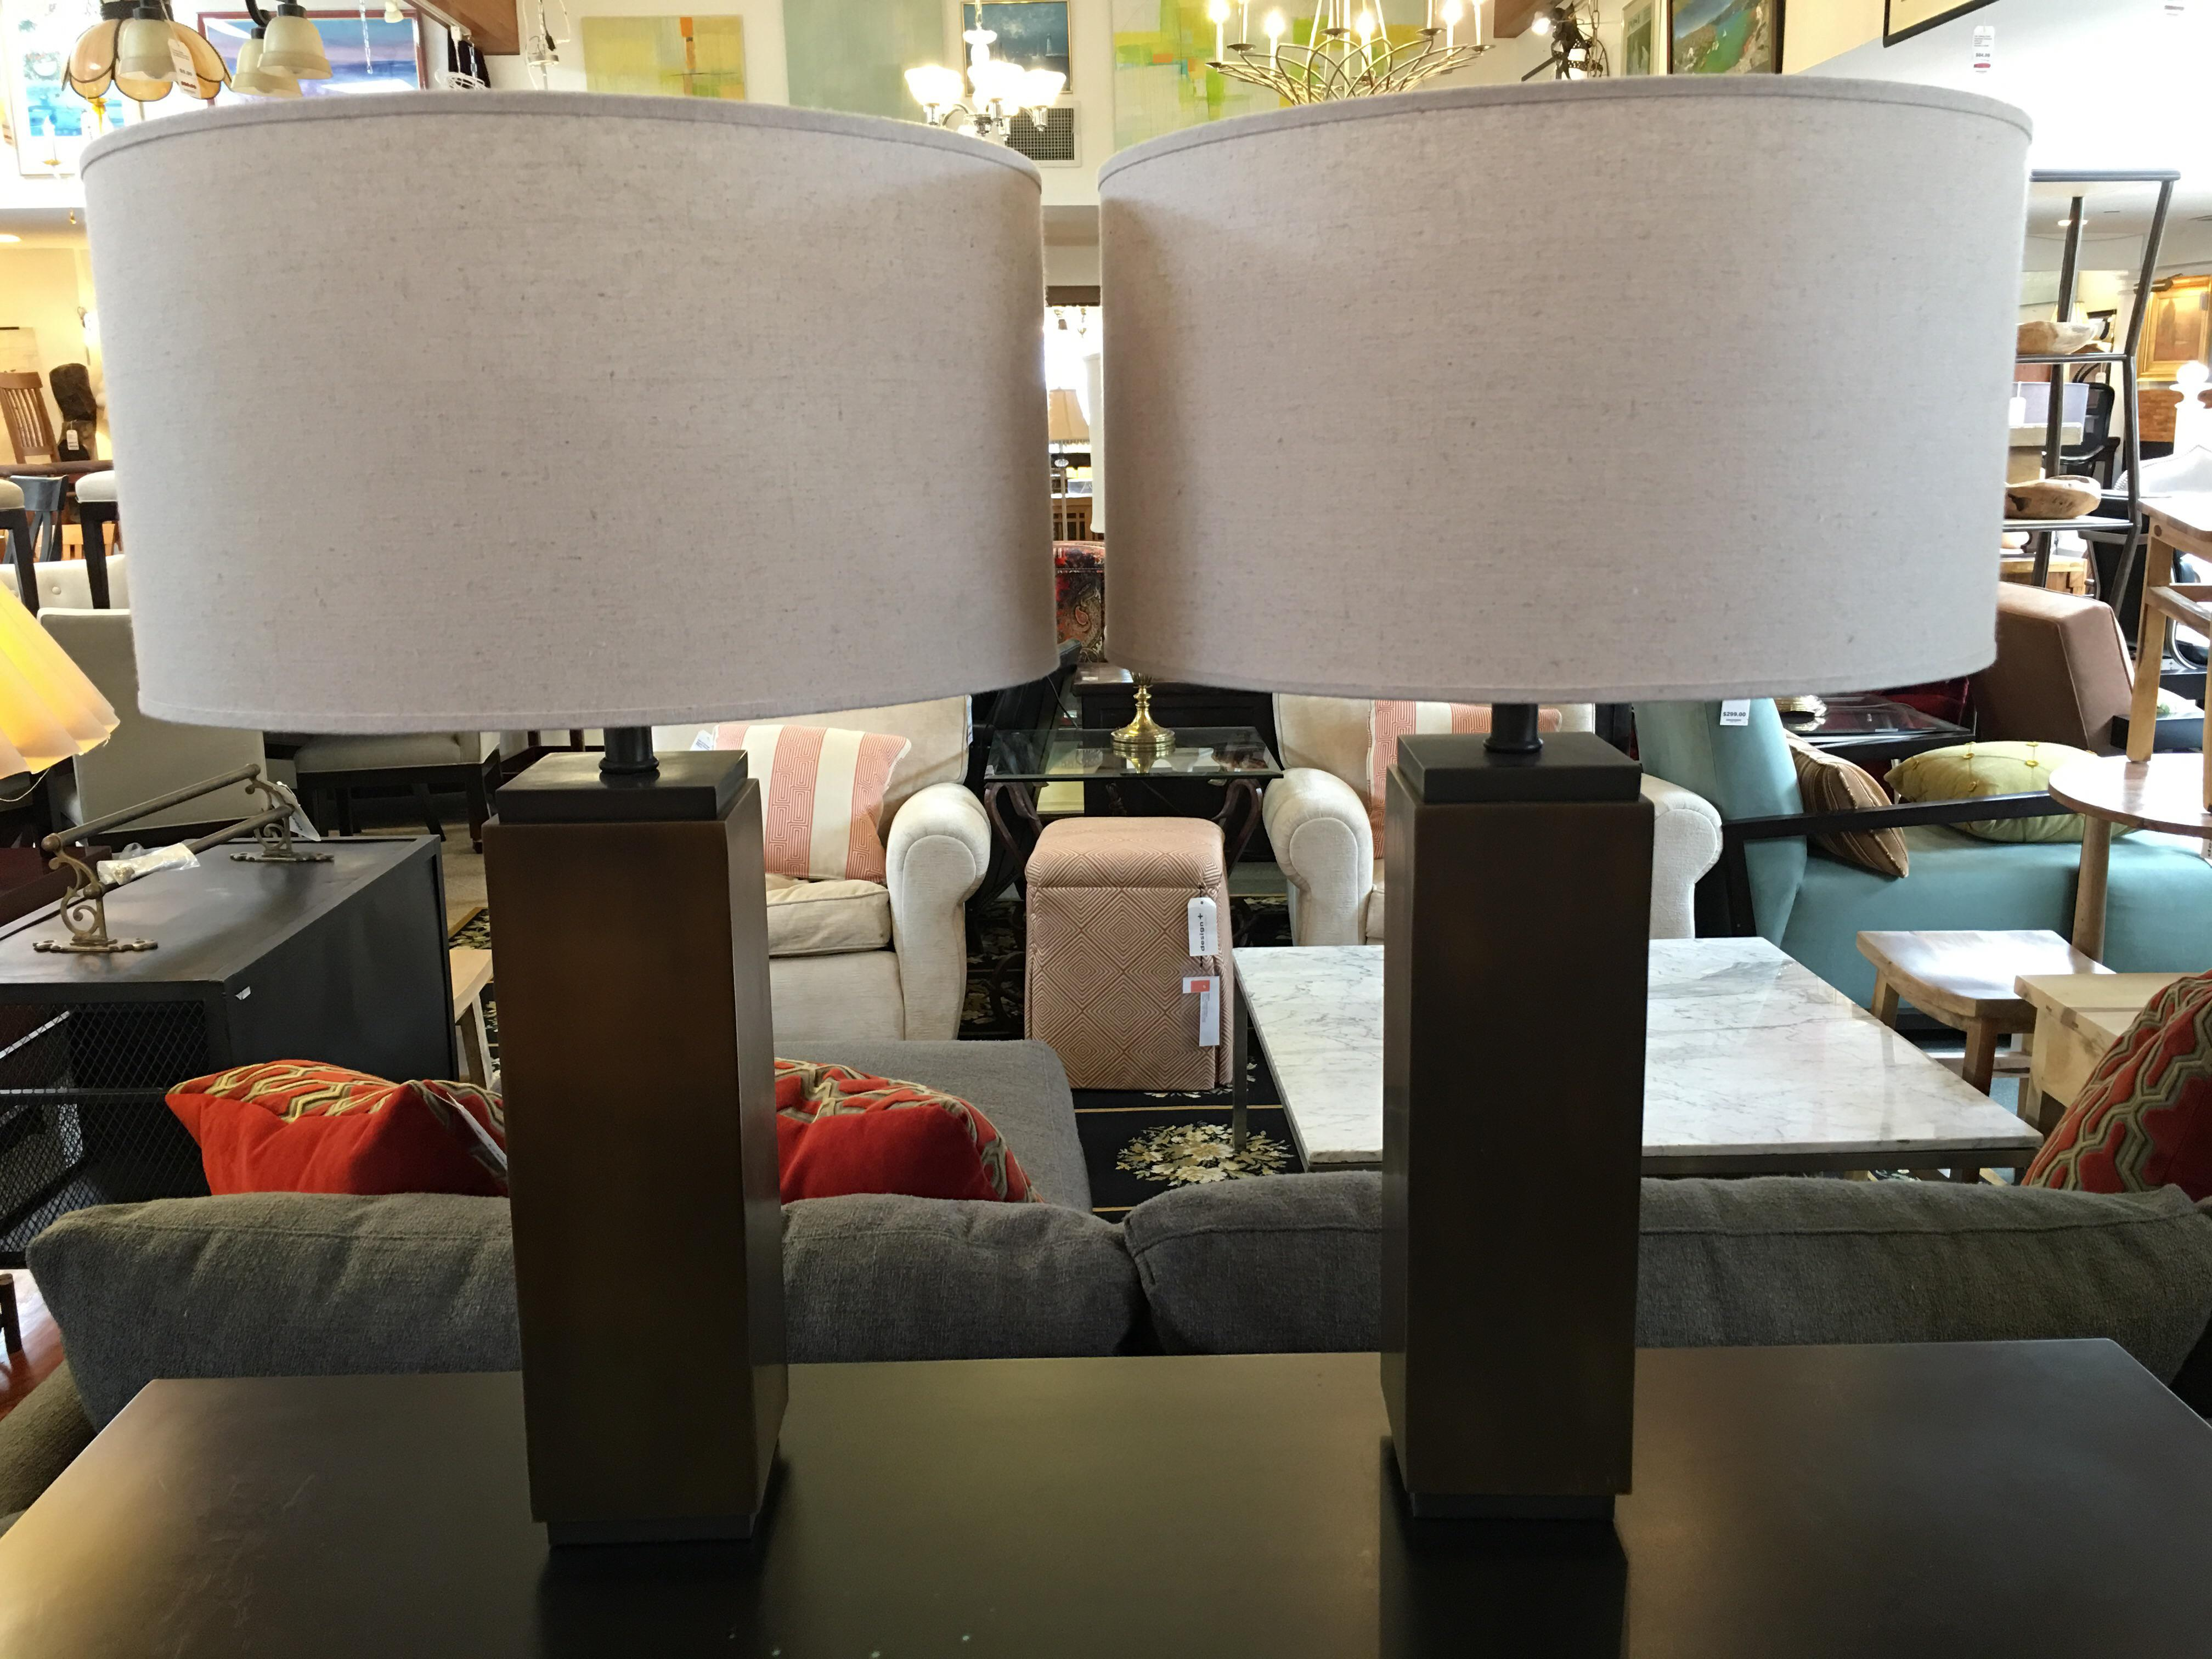 Restoration Hardware Square Column Table Lamp   A Pair   Image 3 Of 7